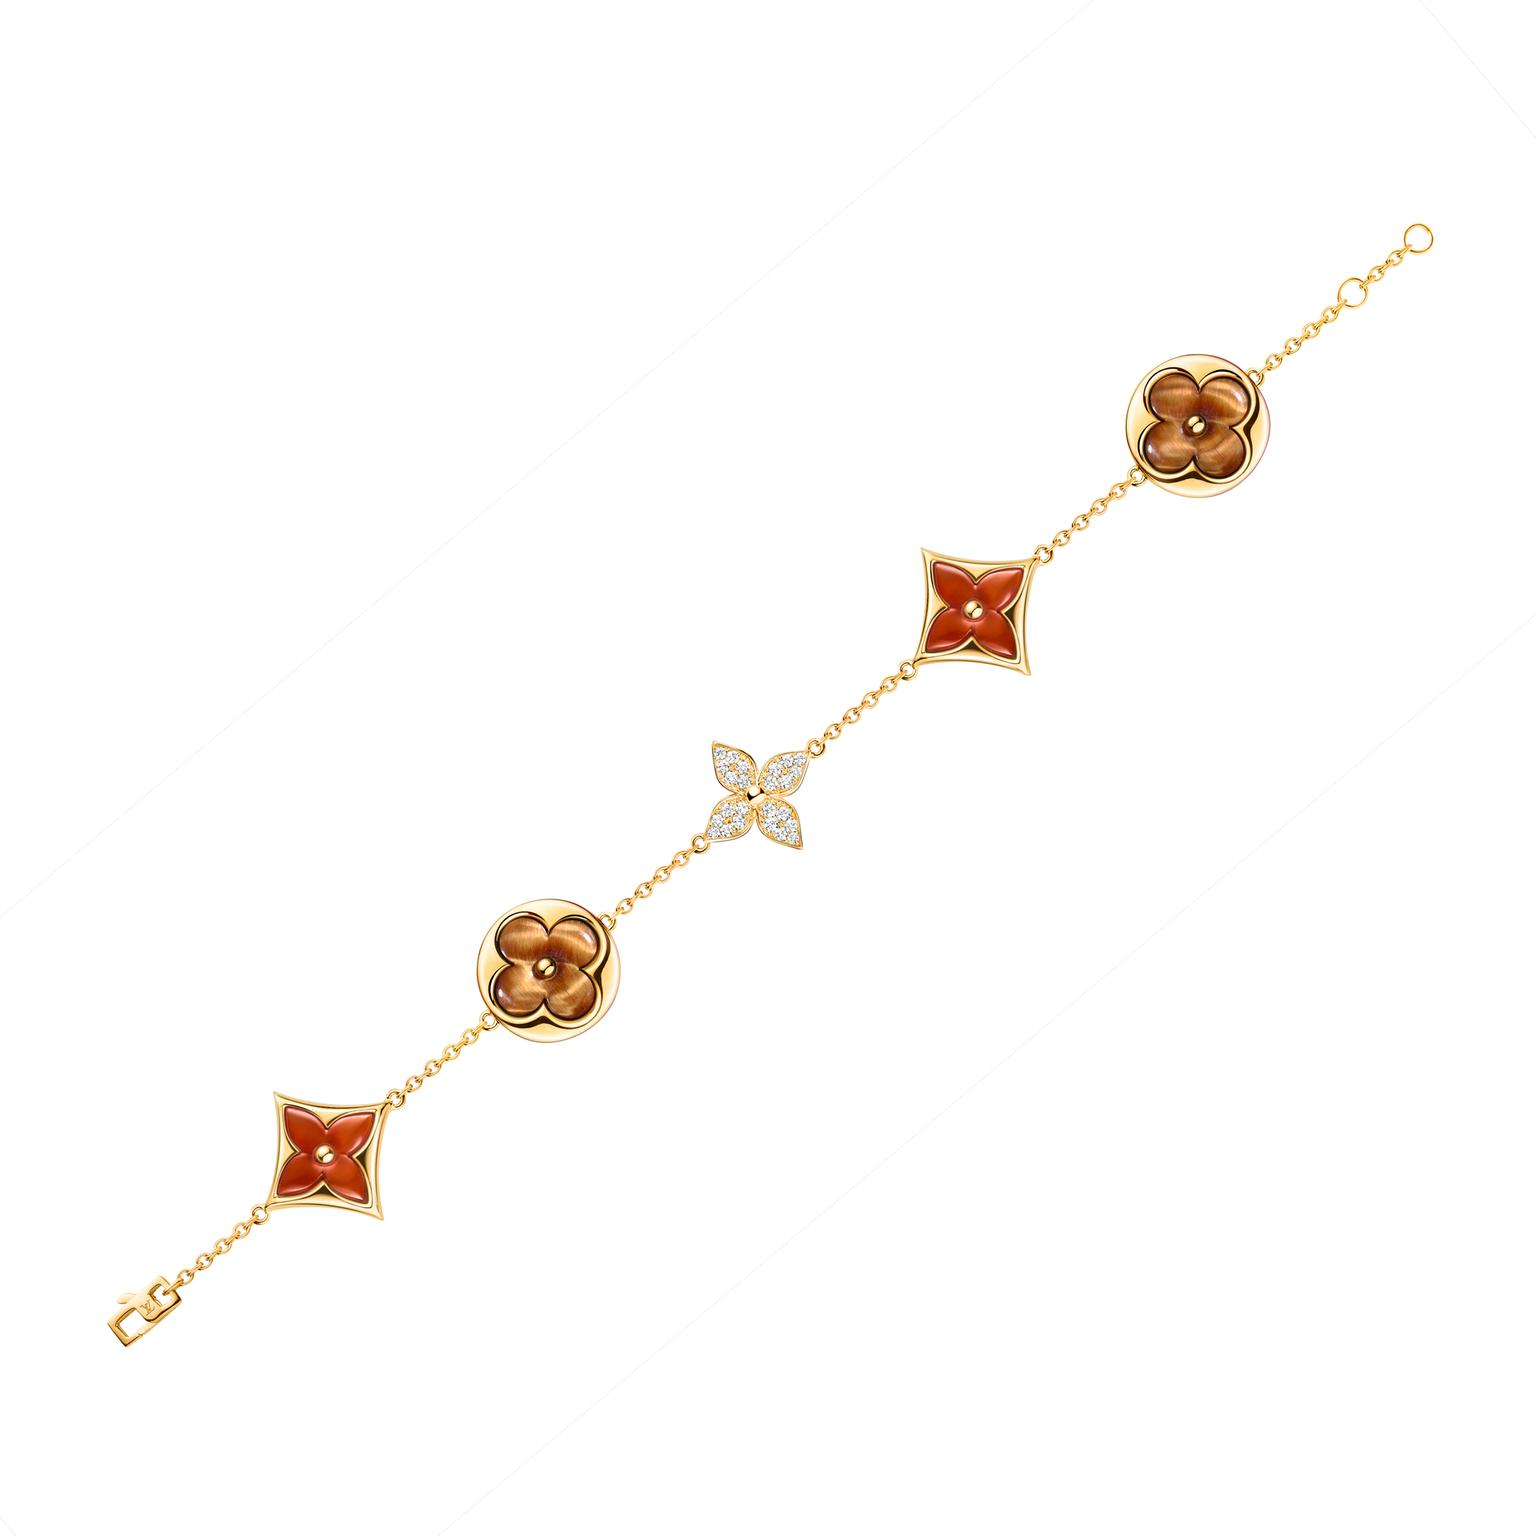 Louis Vuitton tiger's eye and carnelian bracelet